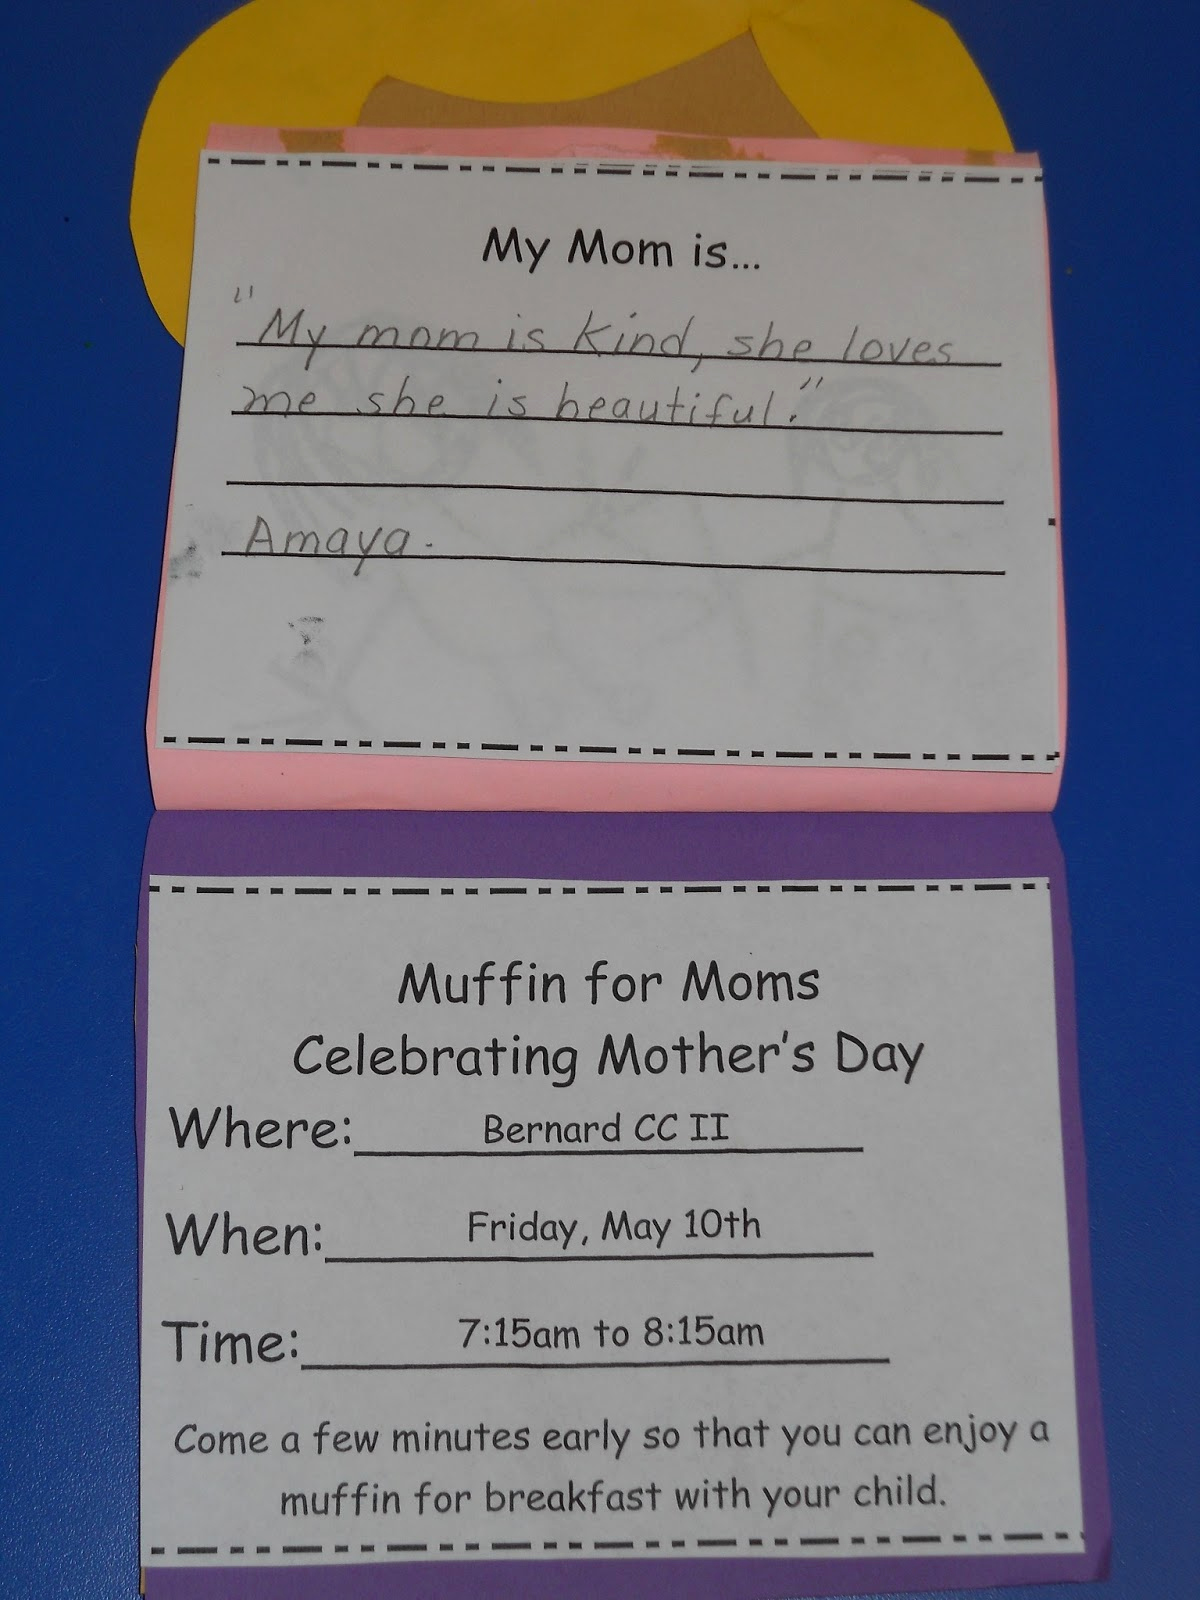 Muffins with Mom Invitation Elegant Learning and Teaching with Preschoolers Muffins for Mom